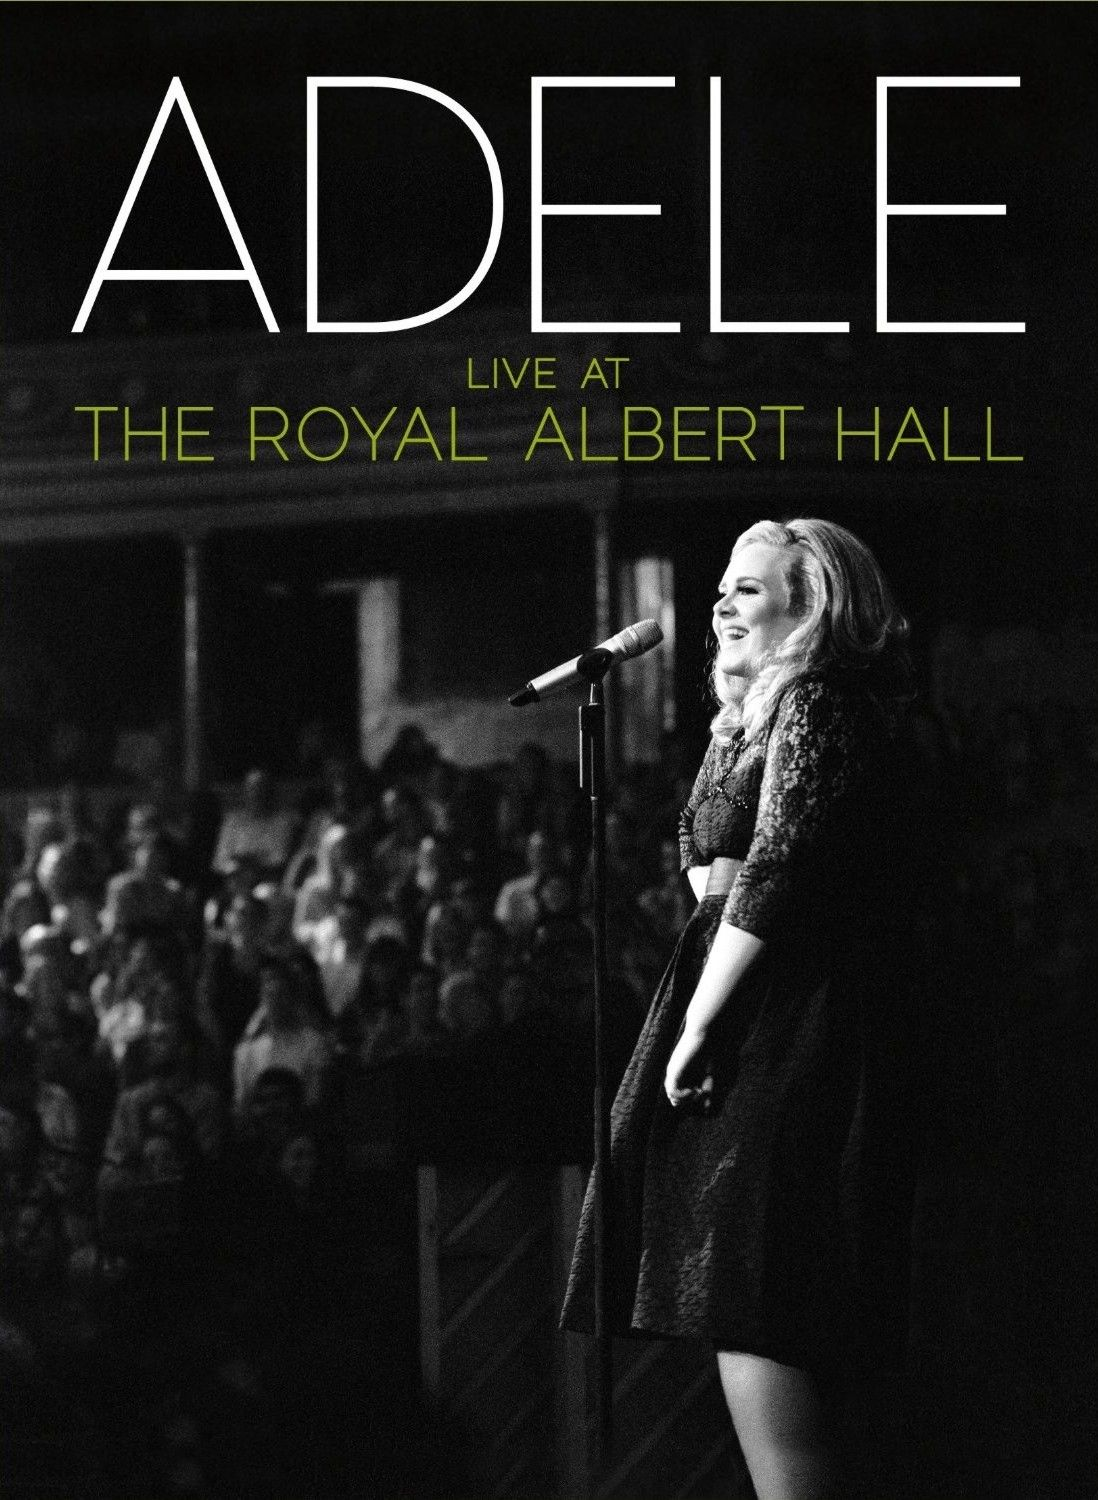 Adele - Live At The Royal Albert Hall album cover